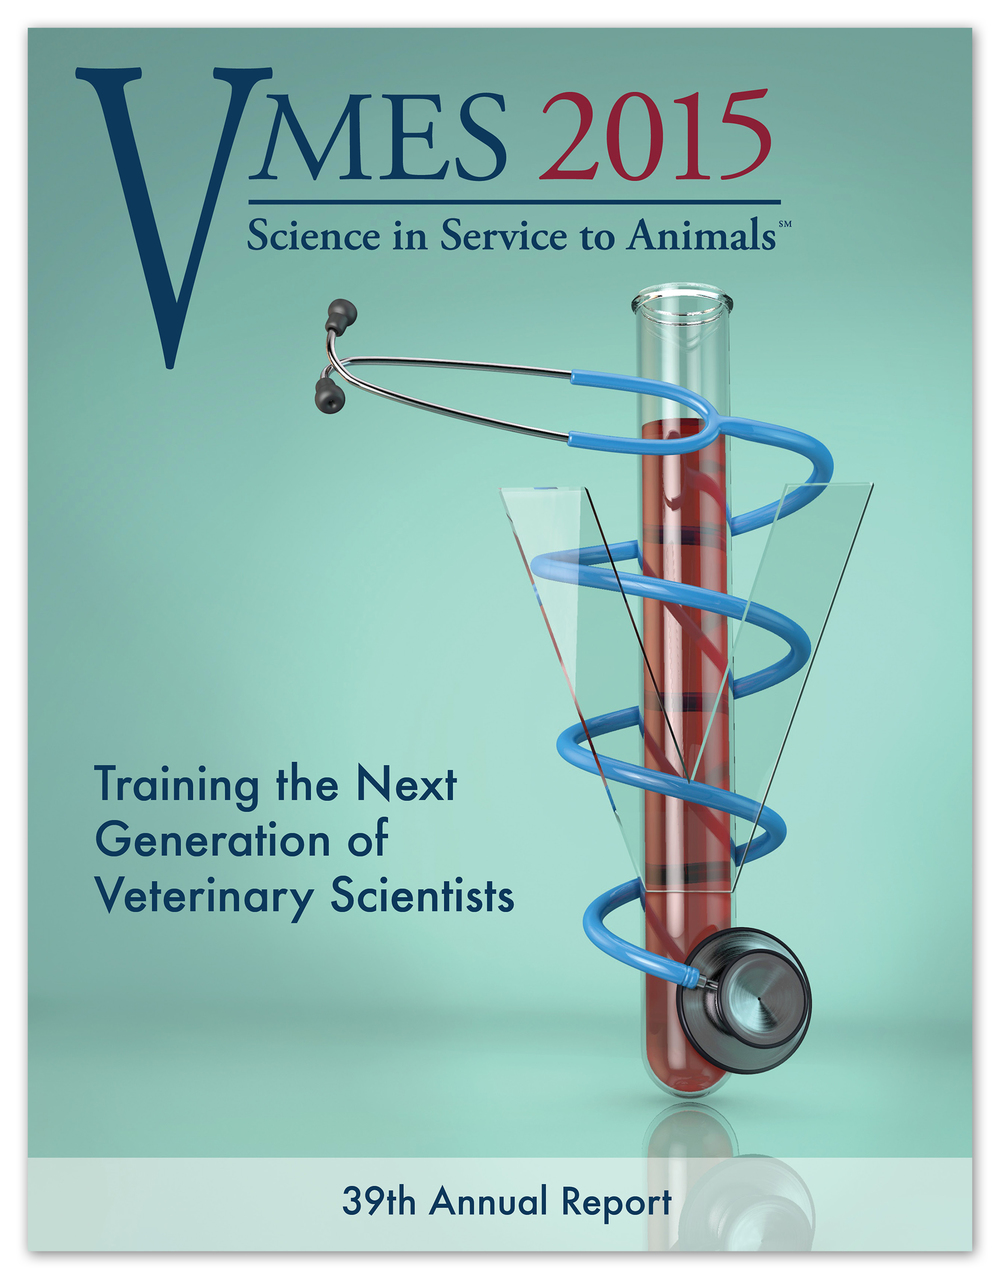 2015 VMES Report Cover   Medium:  Maxon Cinema 4D, Photoshop, and InDesign  Objective:  To create an editorial cover for a veterinary research publication addressing the importance of laboratory research in the service of animal health.    © 2015 The University of Georgia